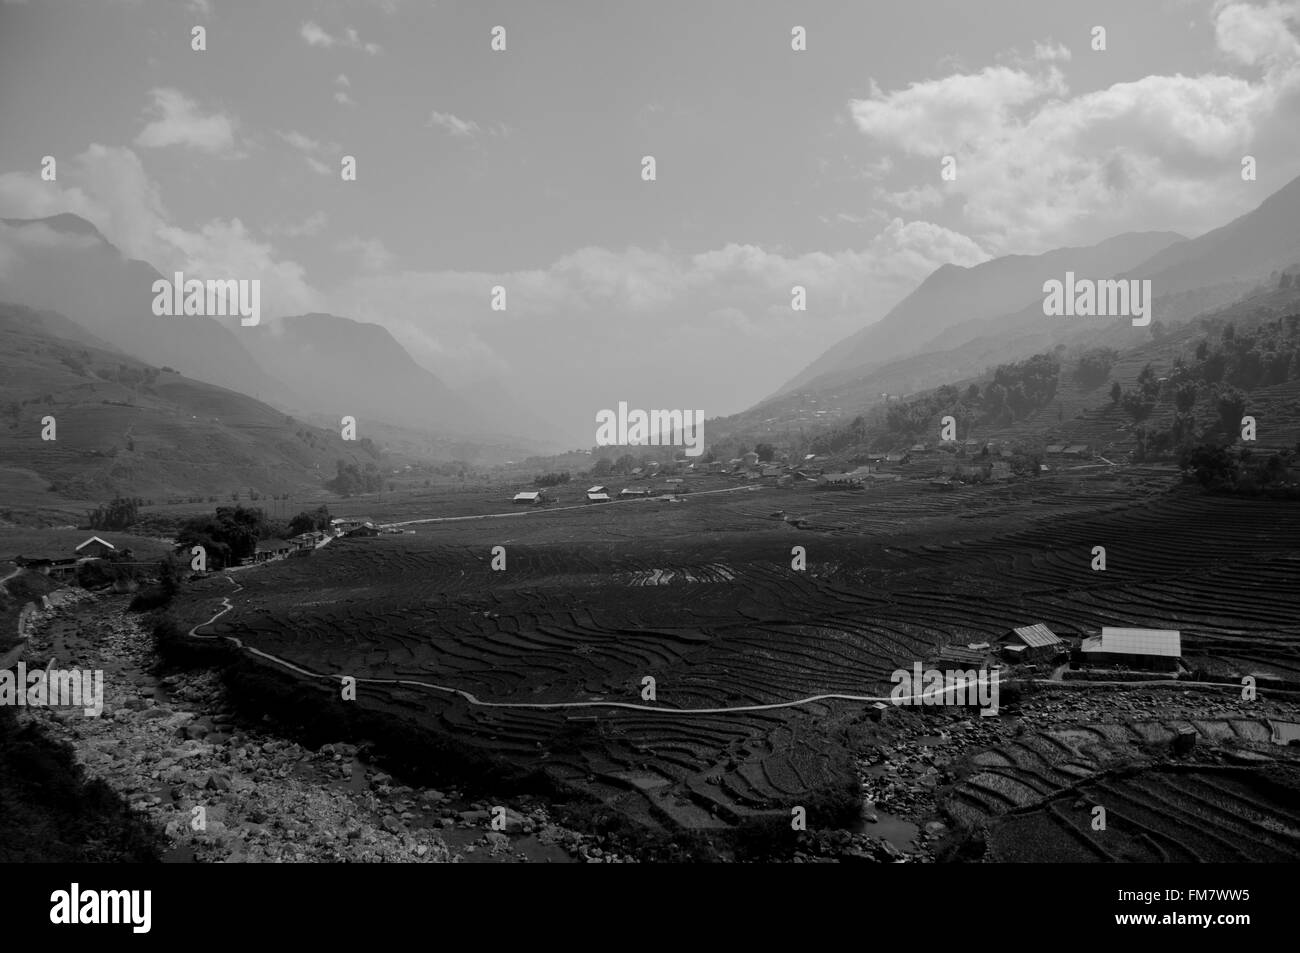 A view of the rice fields and hills of Sapa, Vietnam, converted to black and white - Stock Image